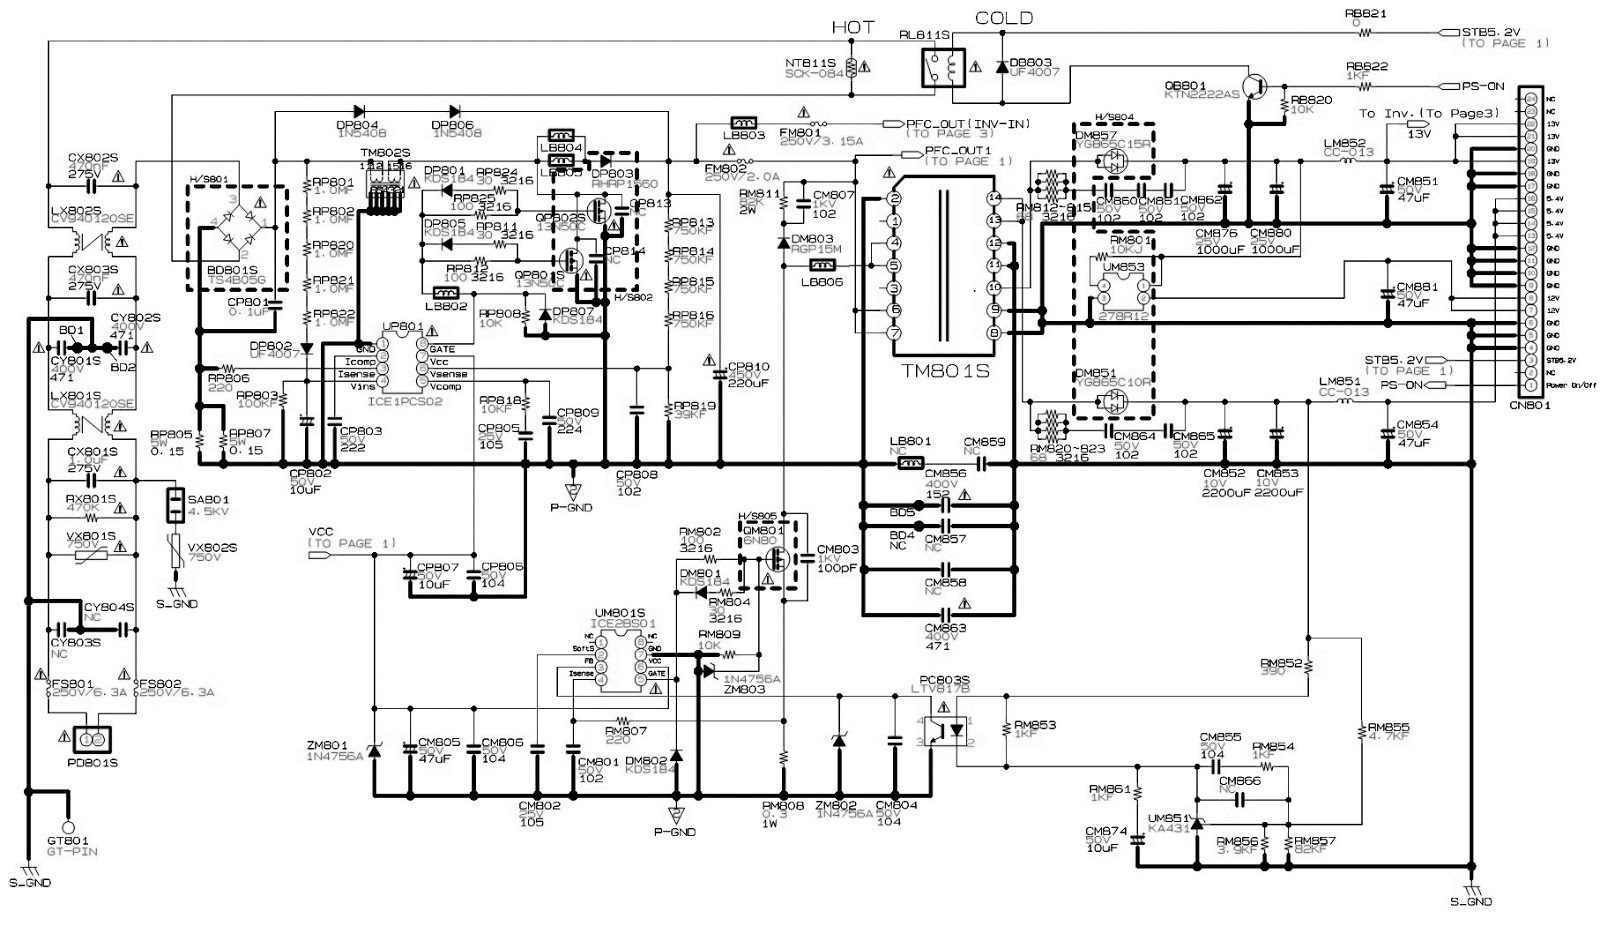 ge refrigerator wiring diagram · bn44 a samsung led lcd tv circuit diagram